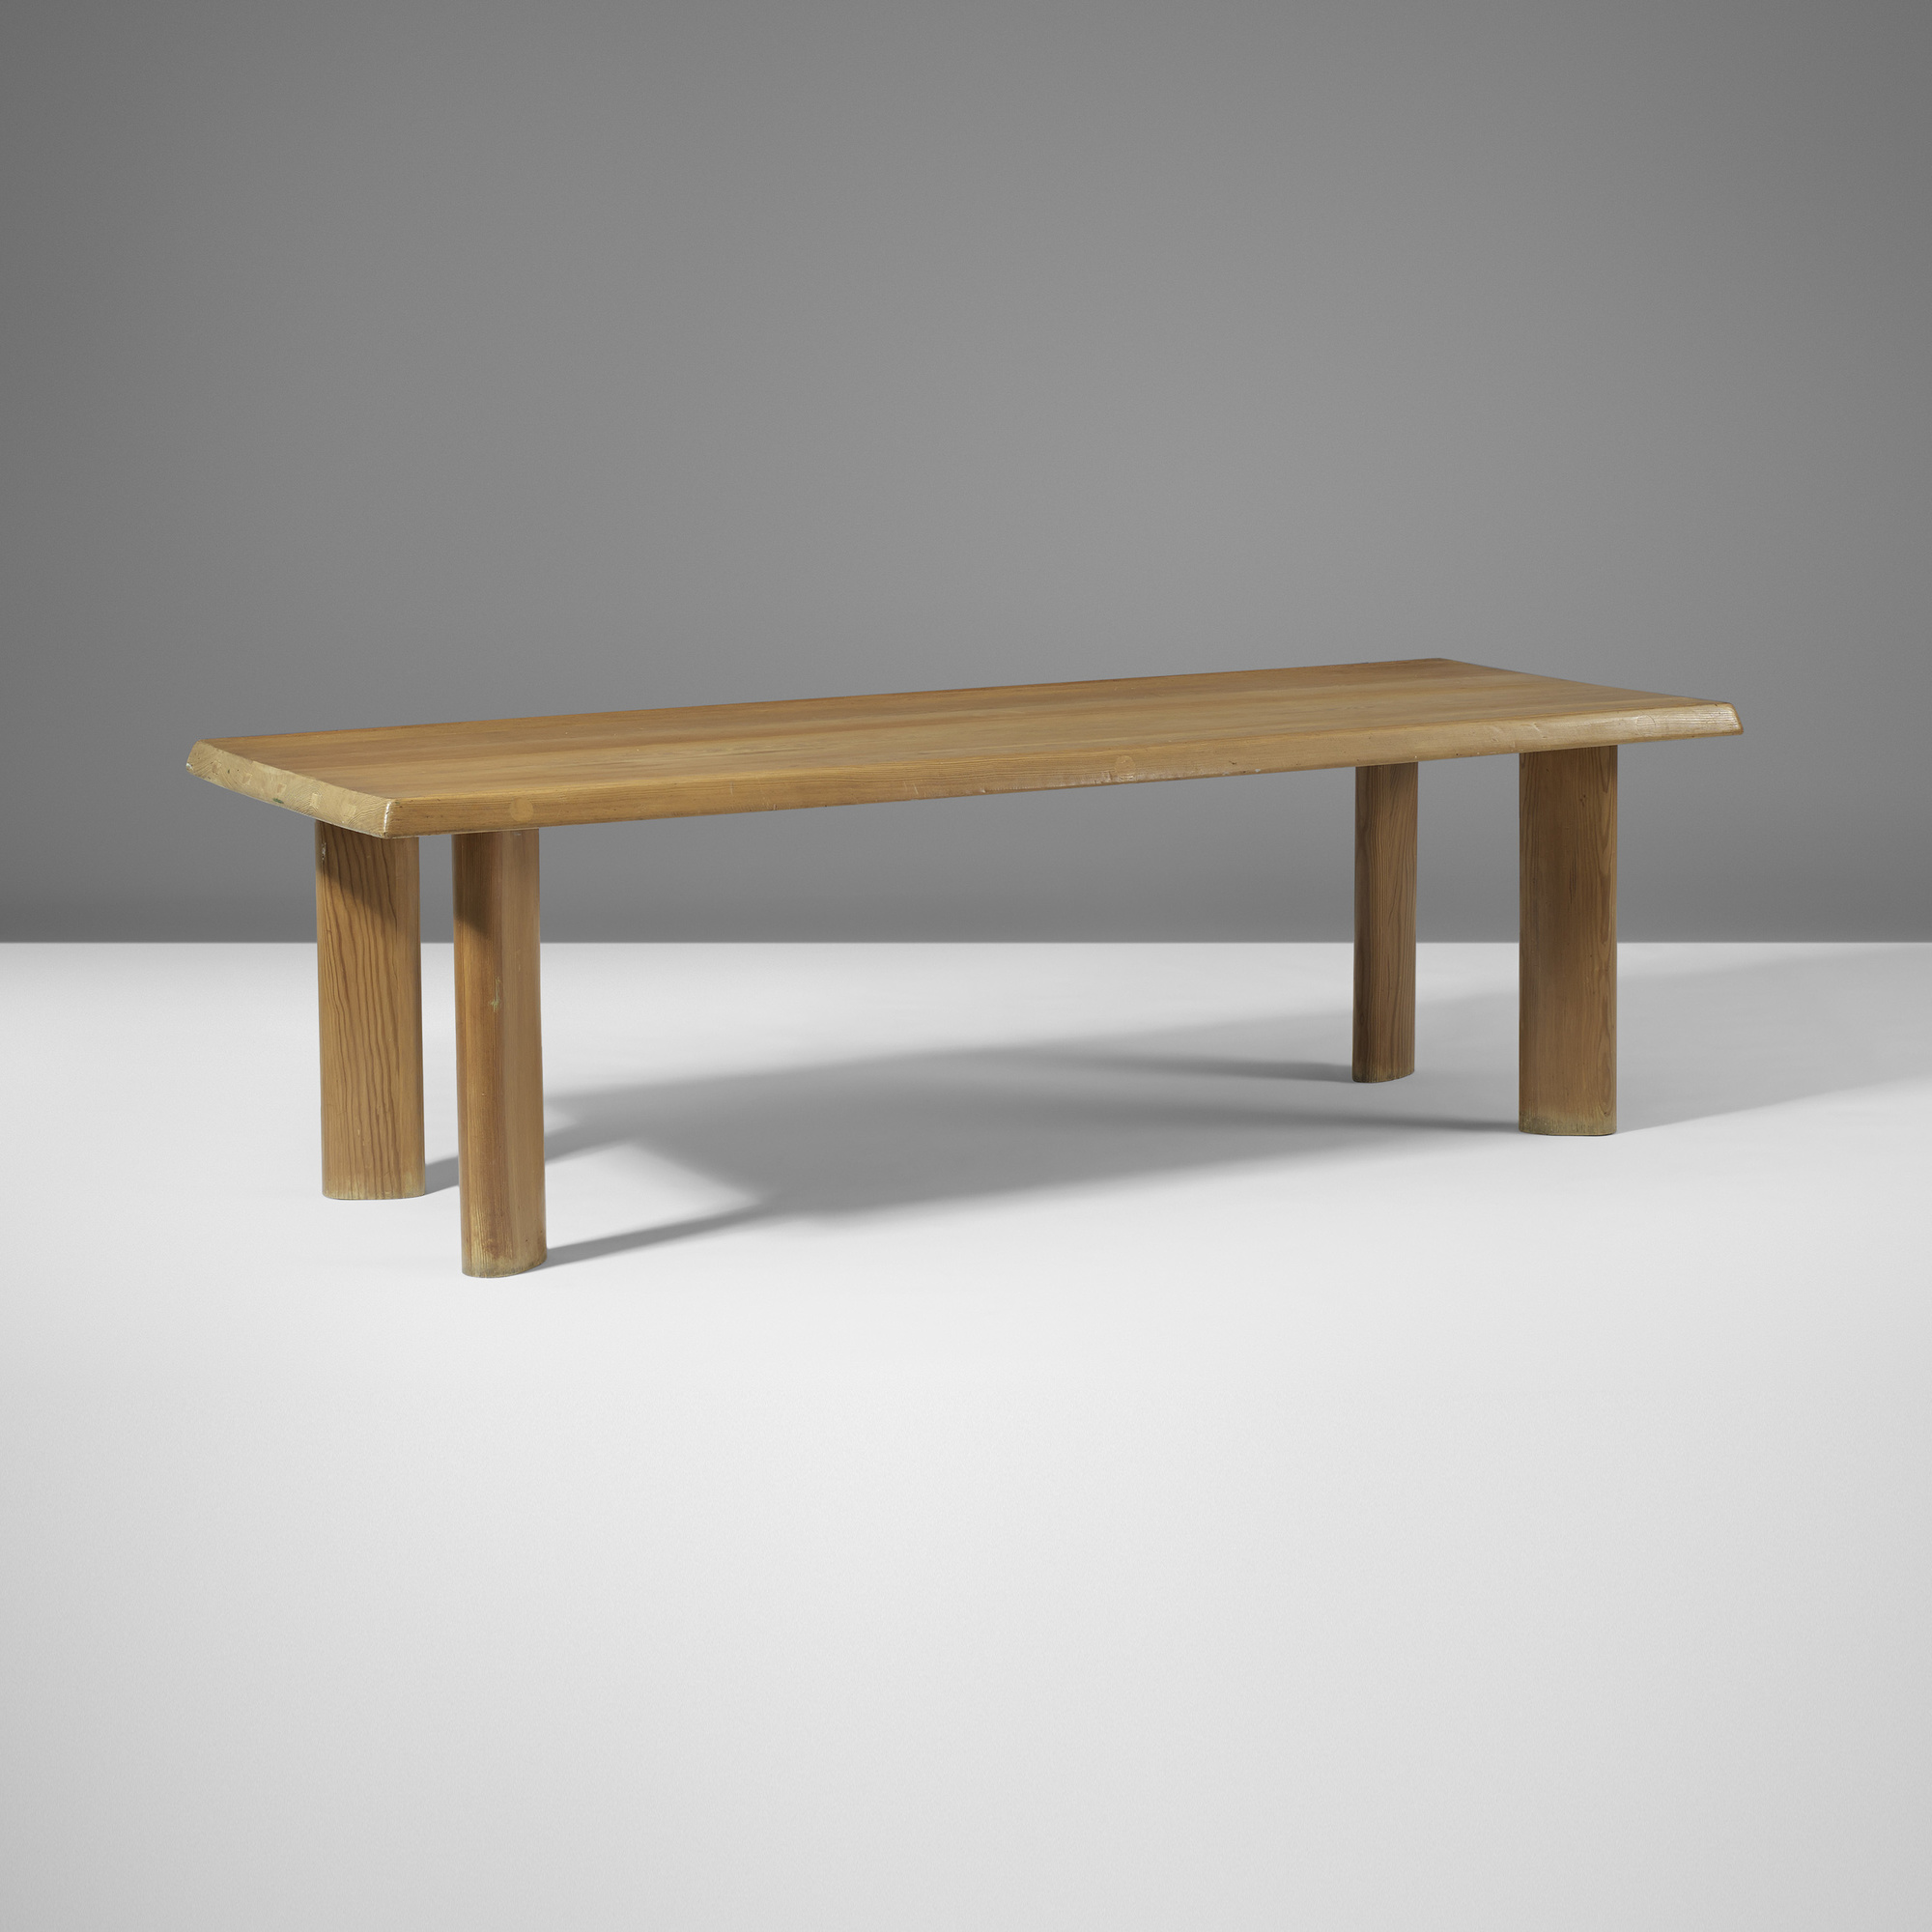 146 Charlotte Perriand Long dining table Recherche 18